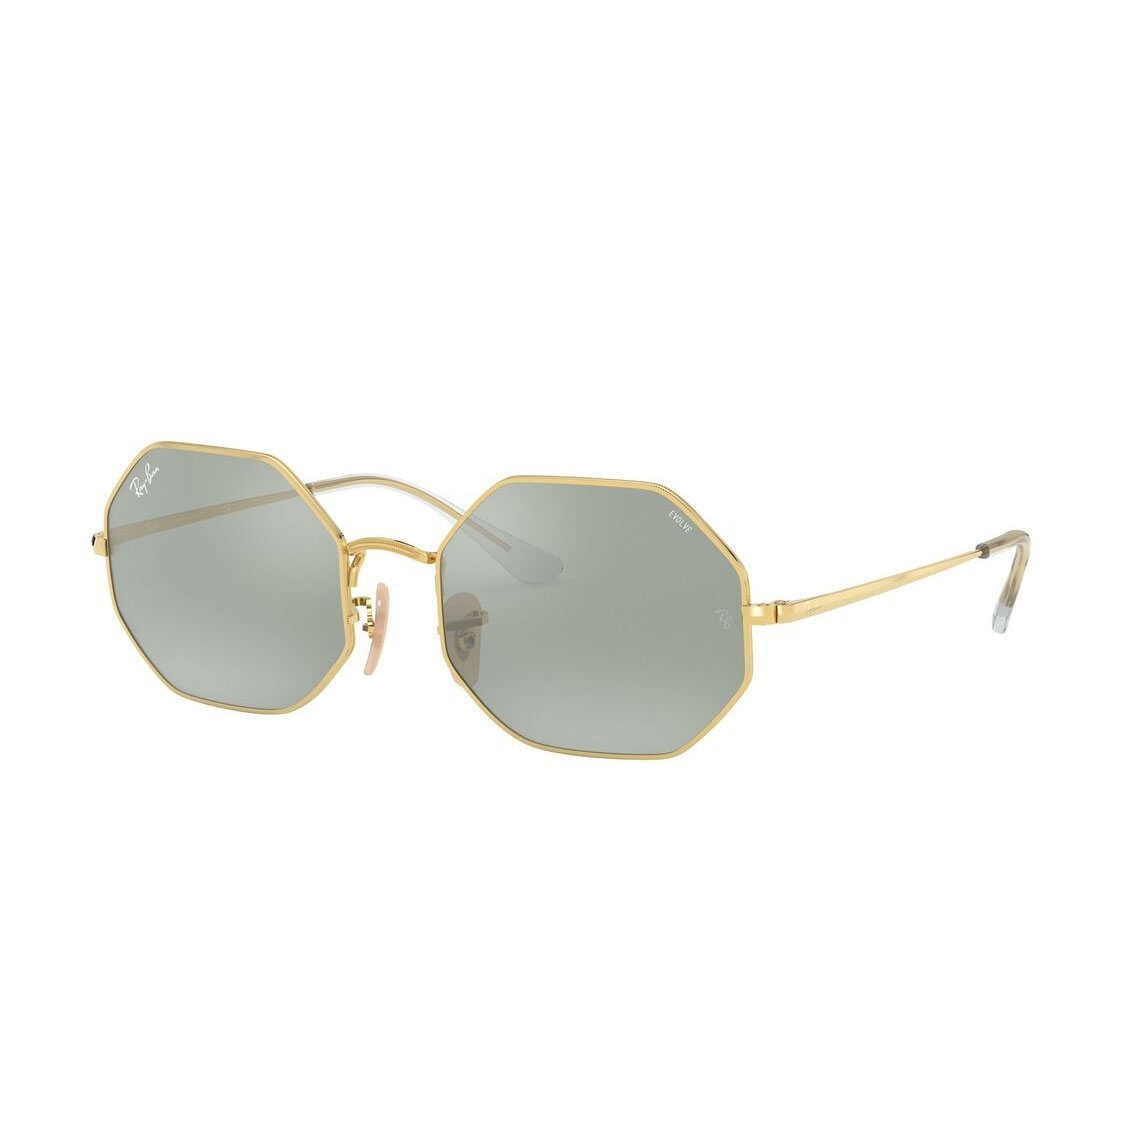 Ray-Ban Octagon 1972 Mirror Evolve RB1972 001/W3 54